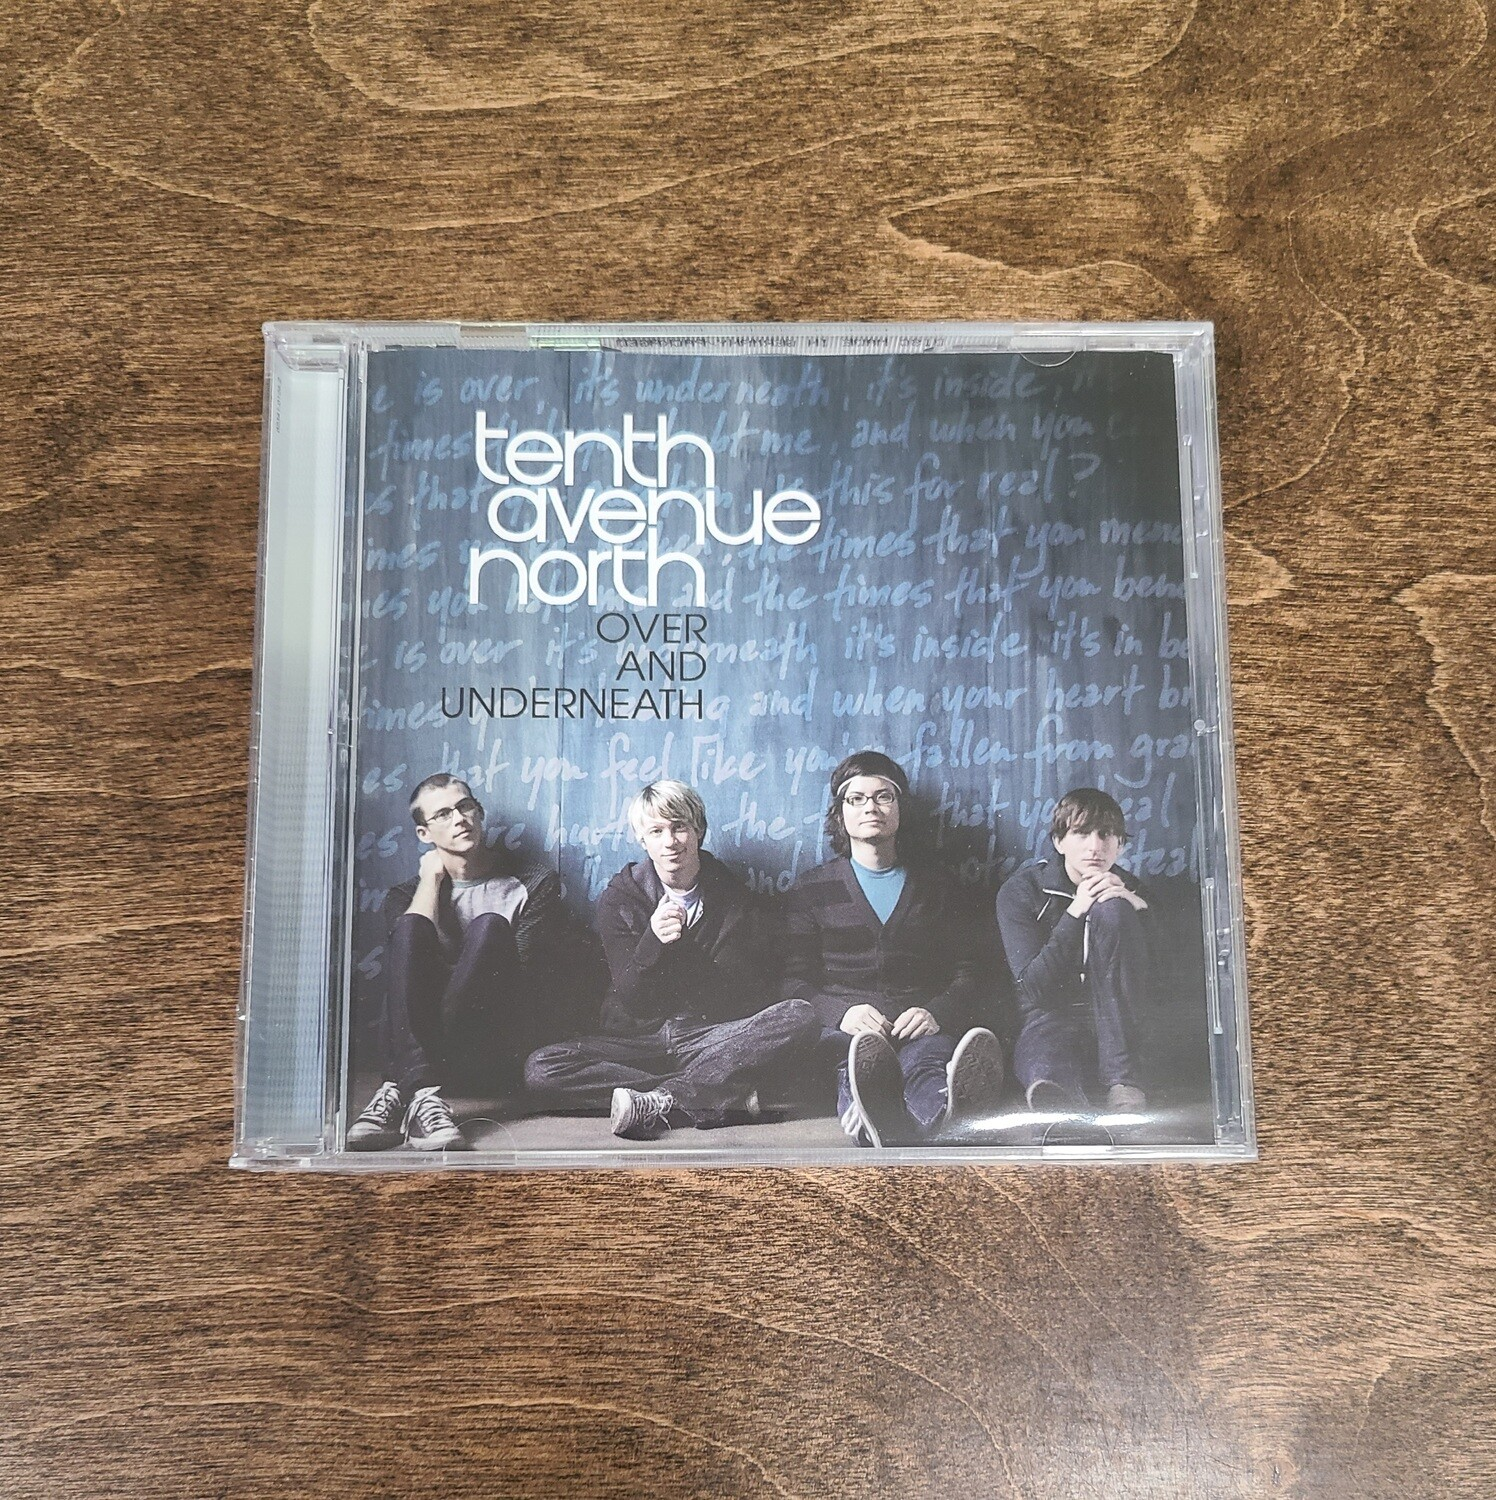 Over and Underneath by Tenth Avenue North CD